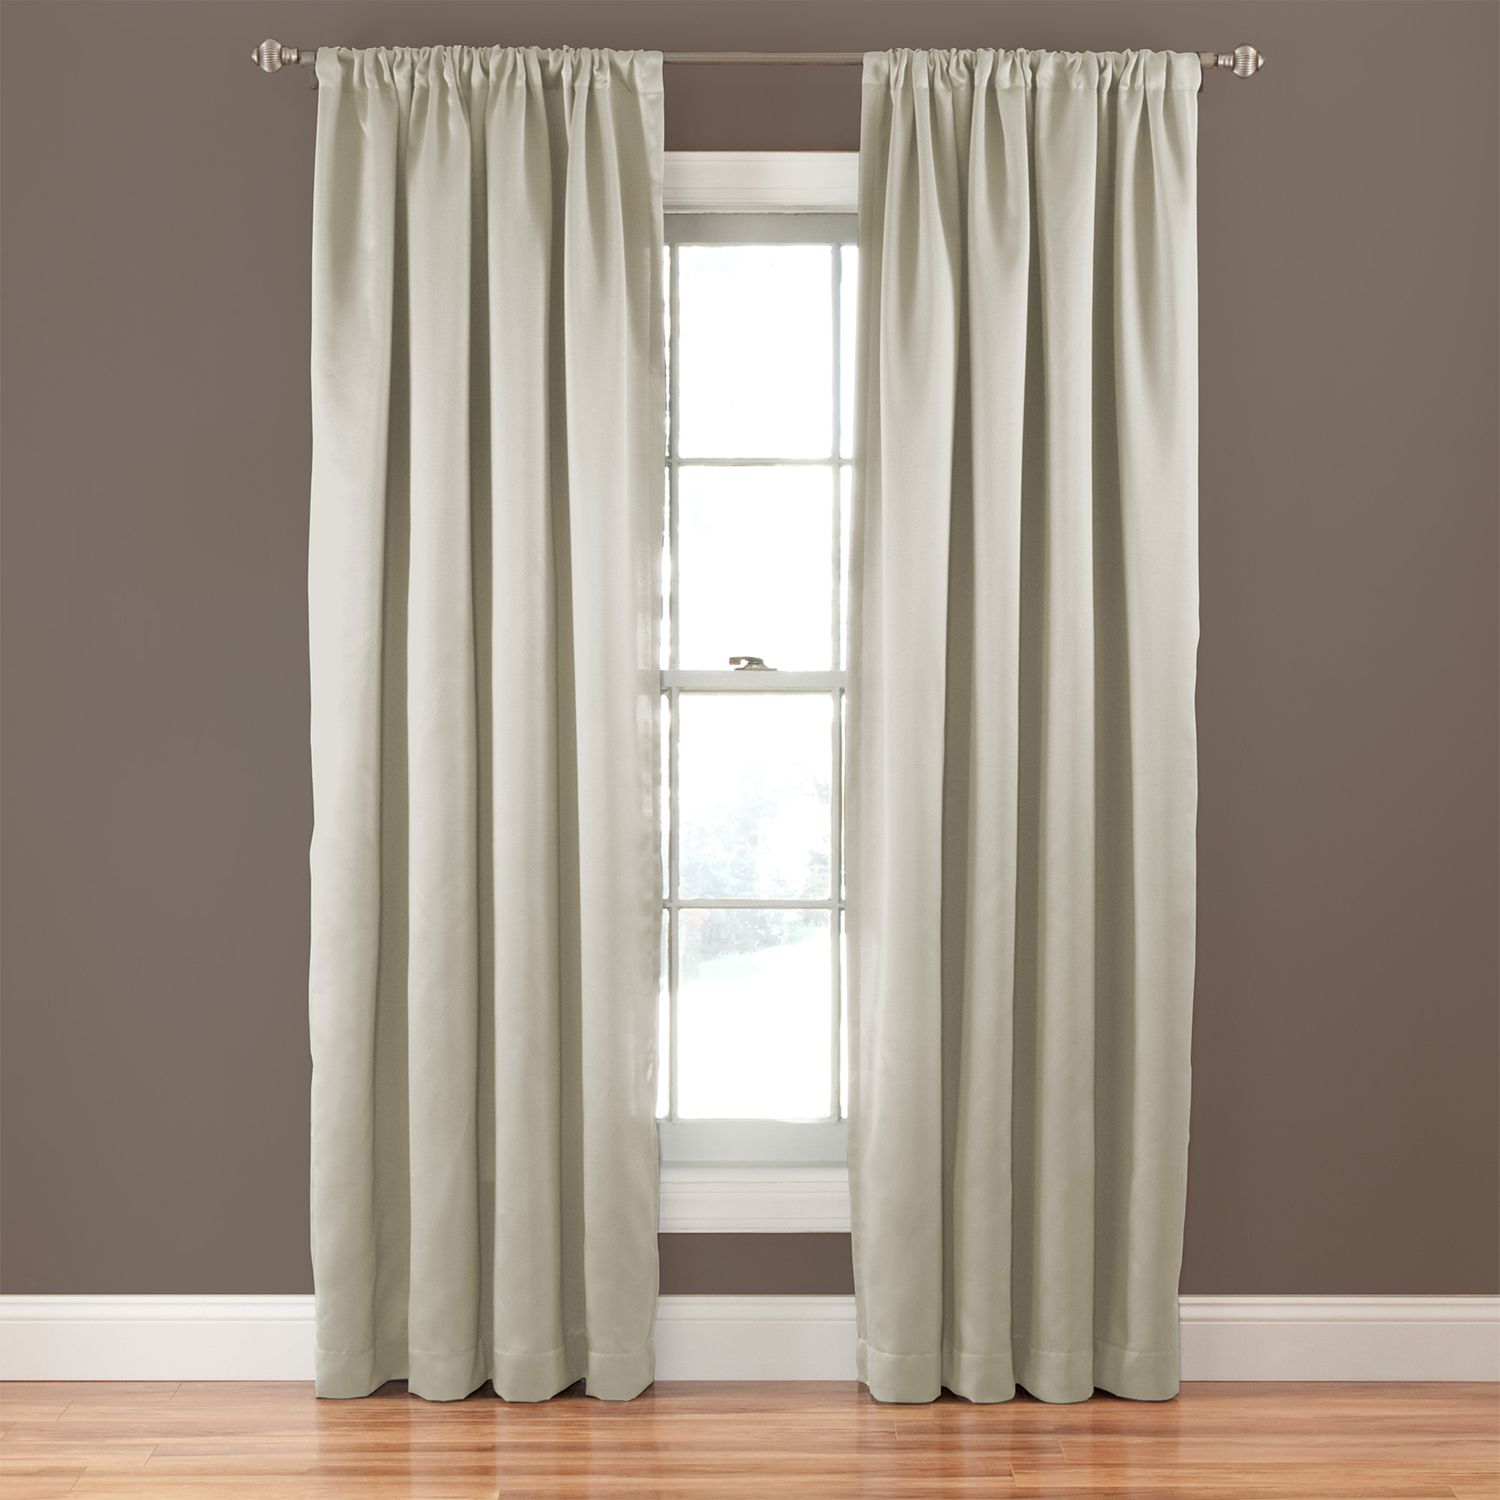 Merveilleux Eclipse Tricia Blackout Thermaweave Window Treatments